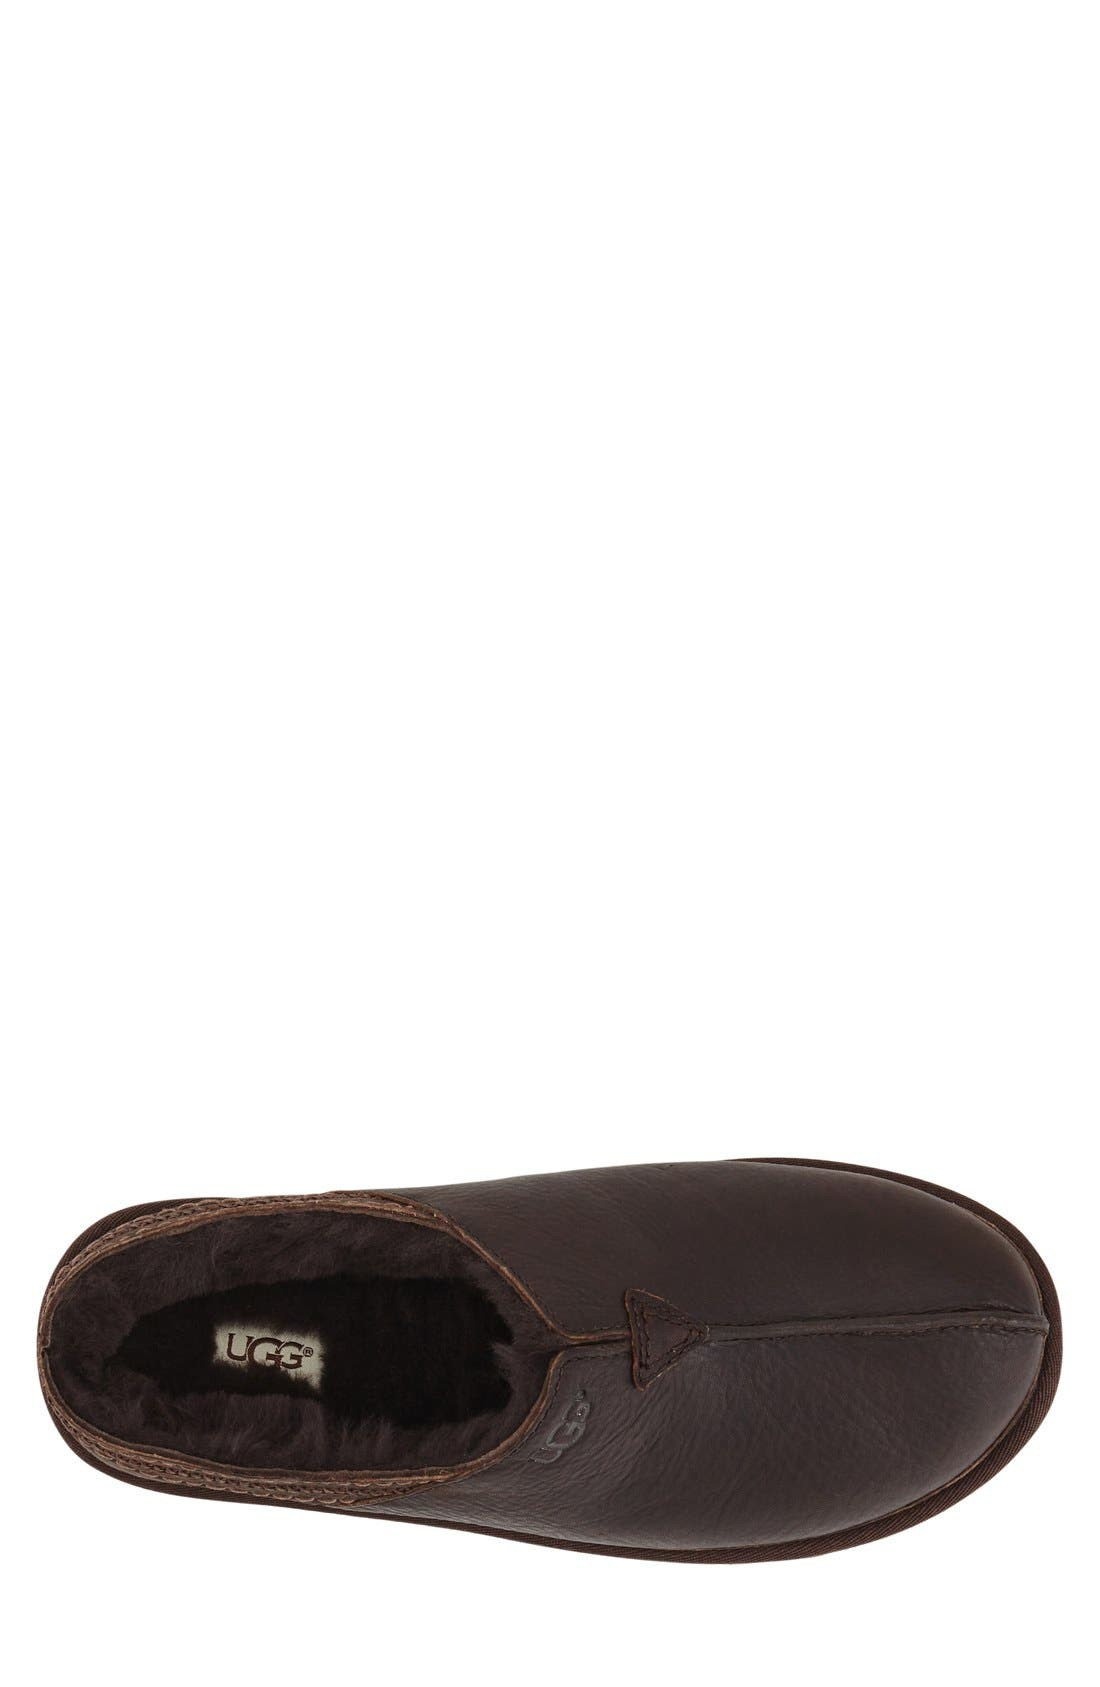 Alternate Image 3  - UGG® Neuman Slipper (Men)